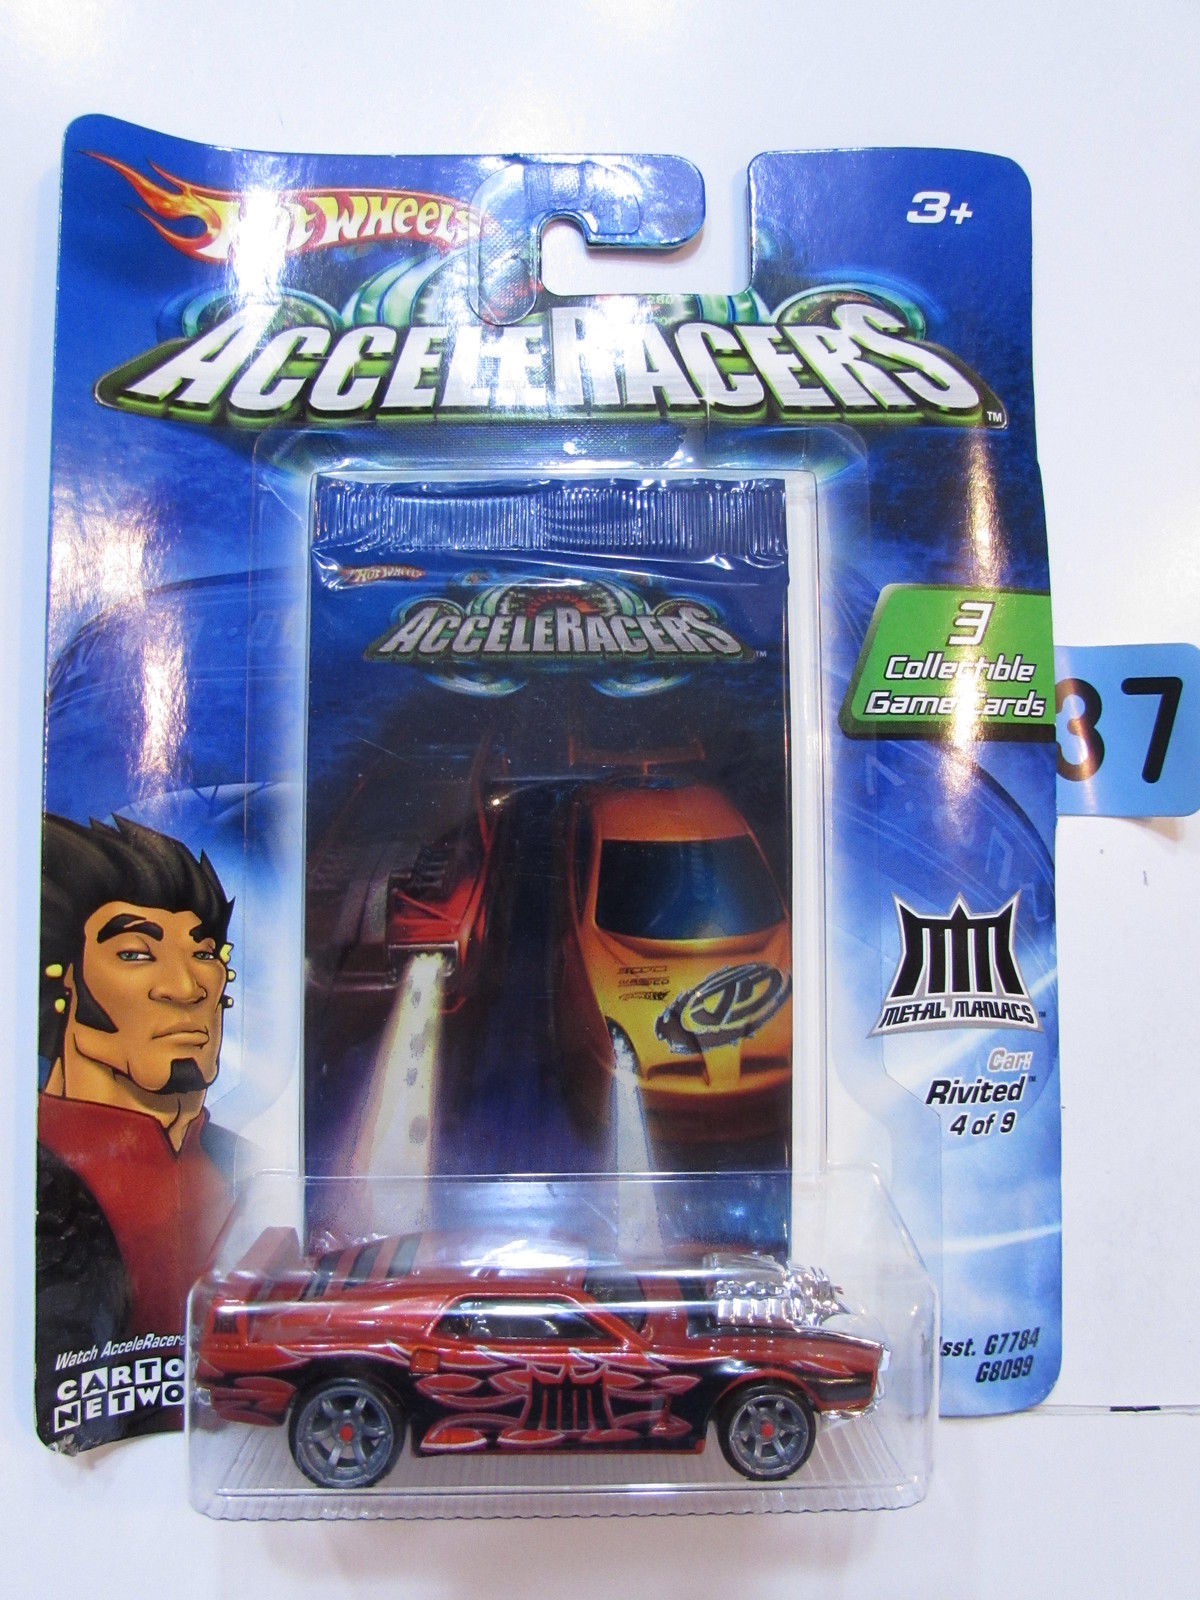 2004 HOT WHEELS ACCELERACERS RIVITED #4/9 - 3 COLLECTIBLE GAME CARDS